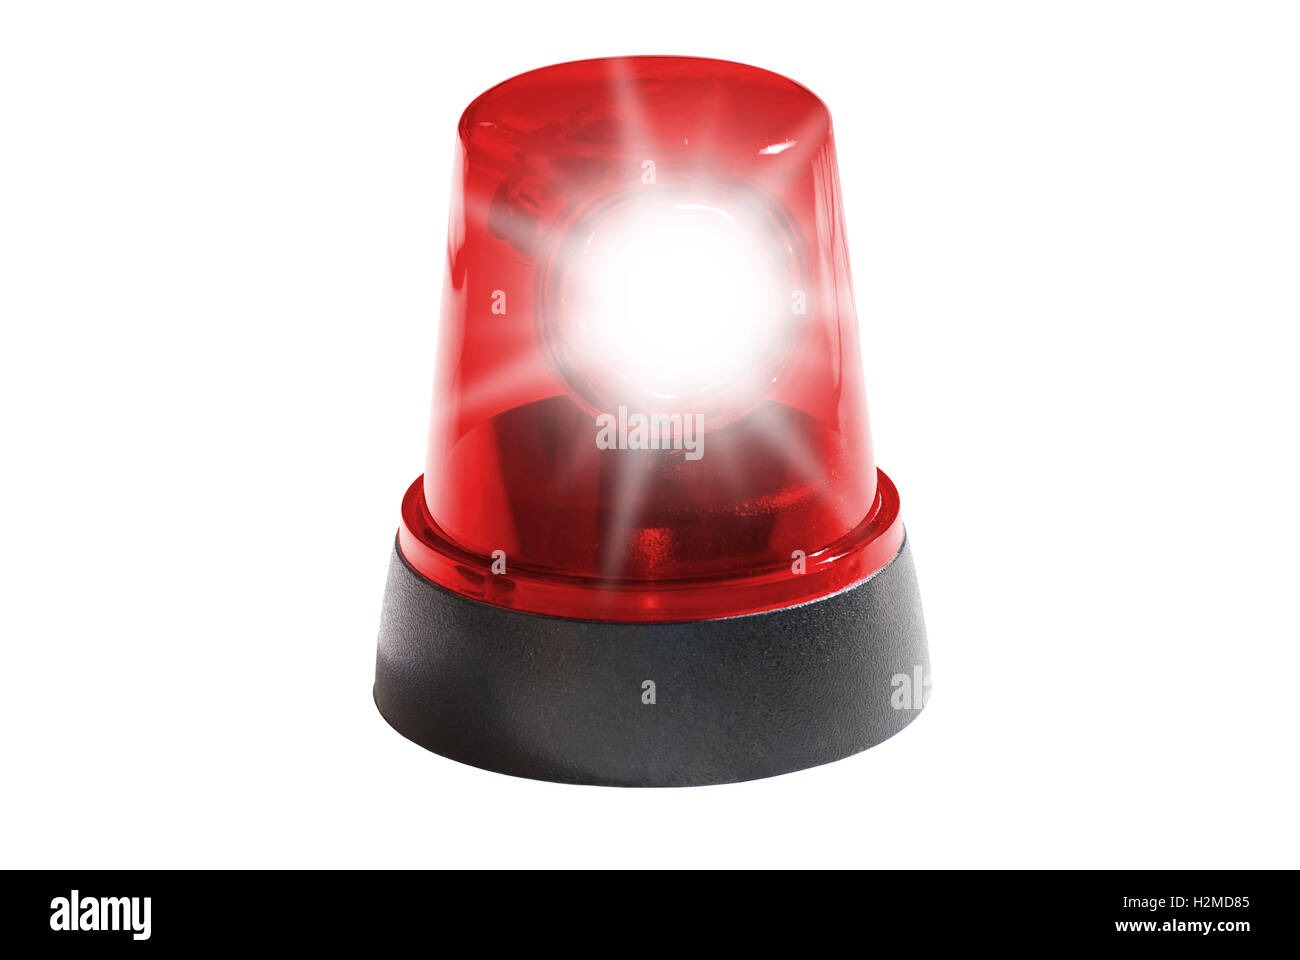 Red Siren Light Stock Photo: 122151349 - Alamy